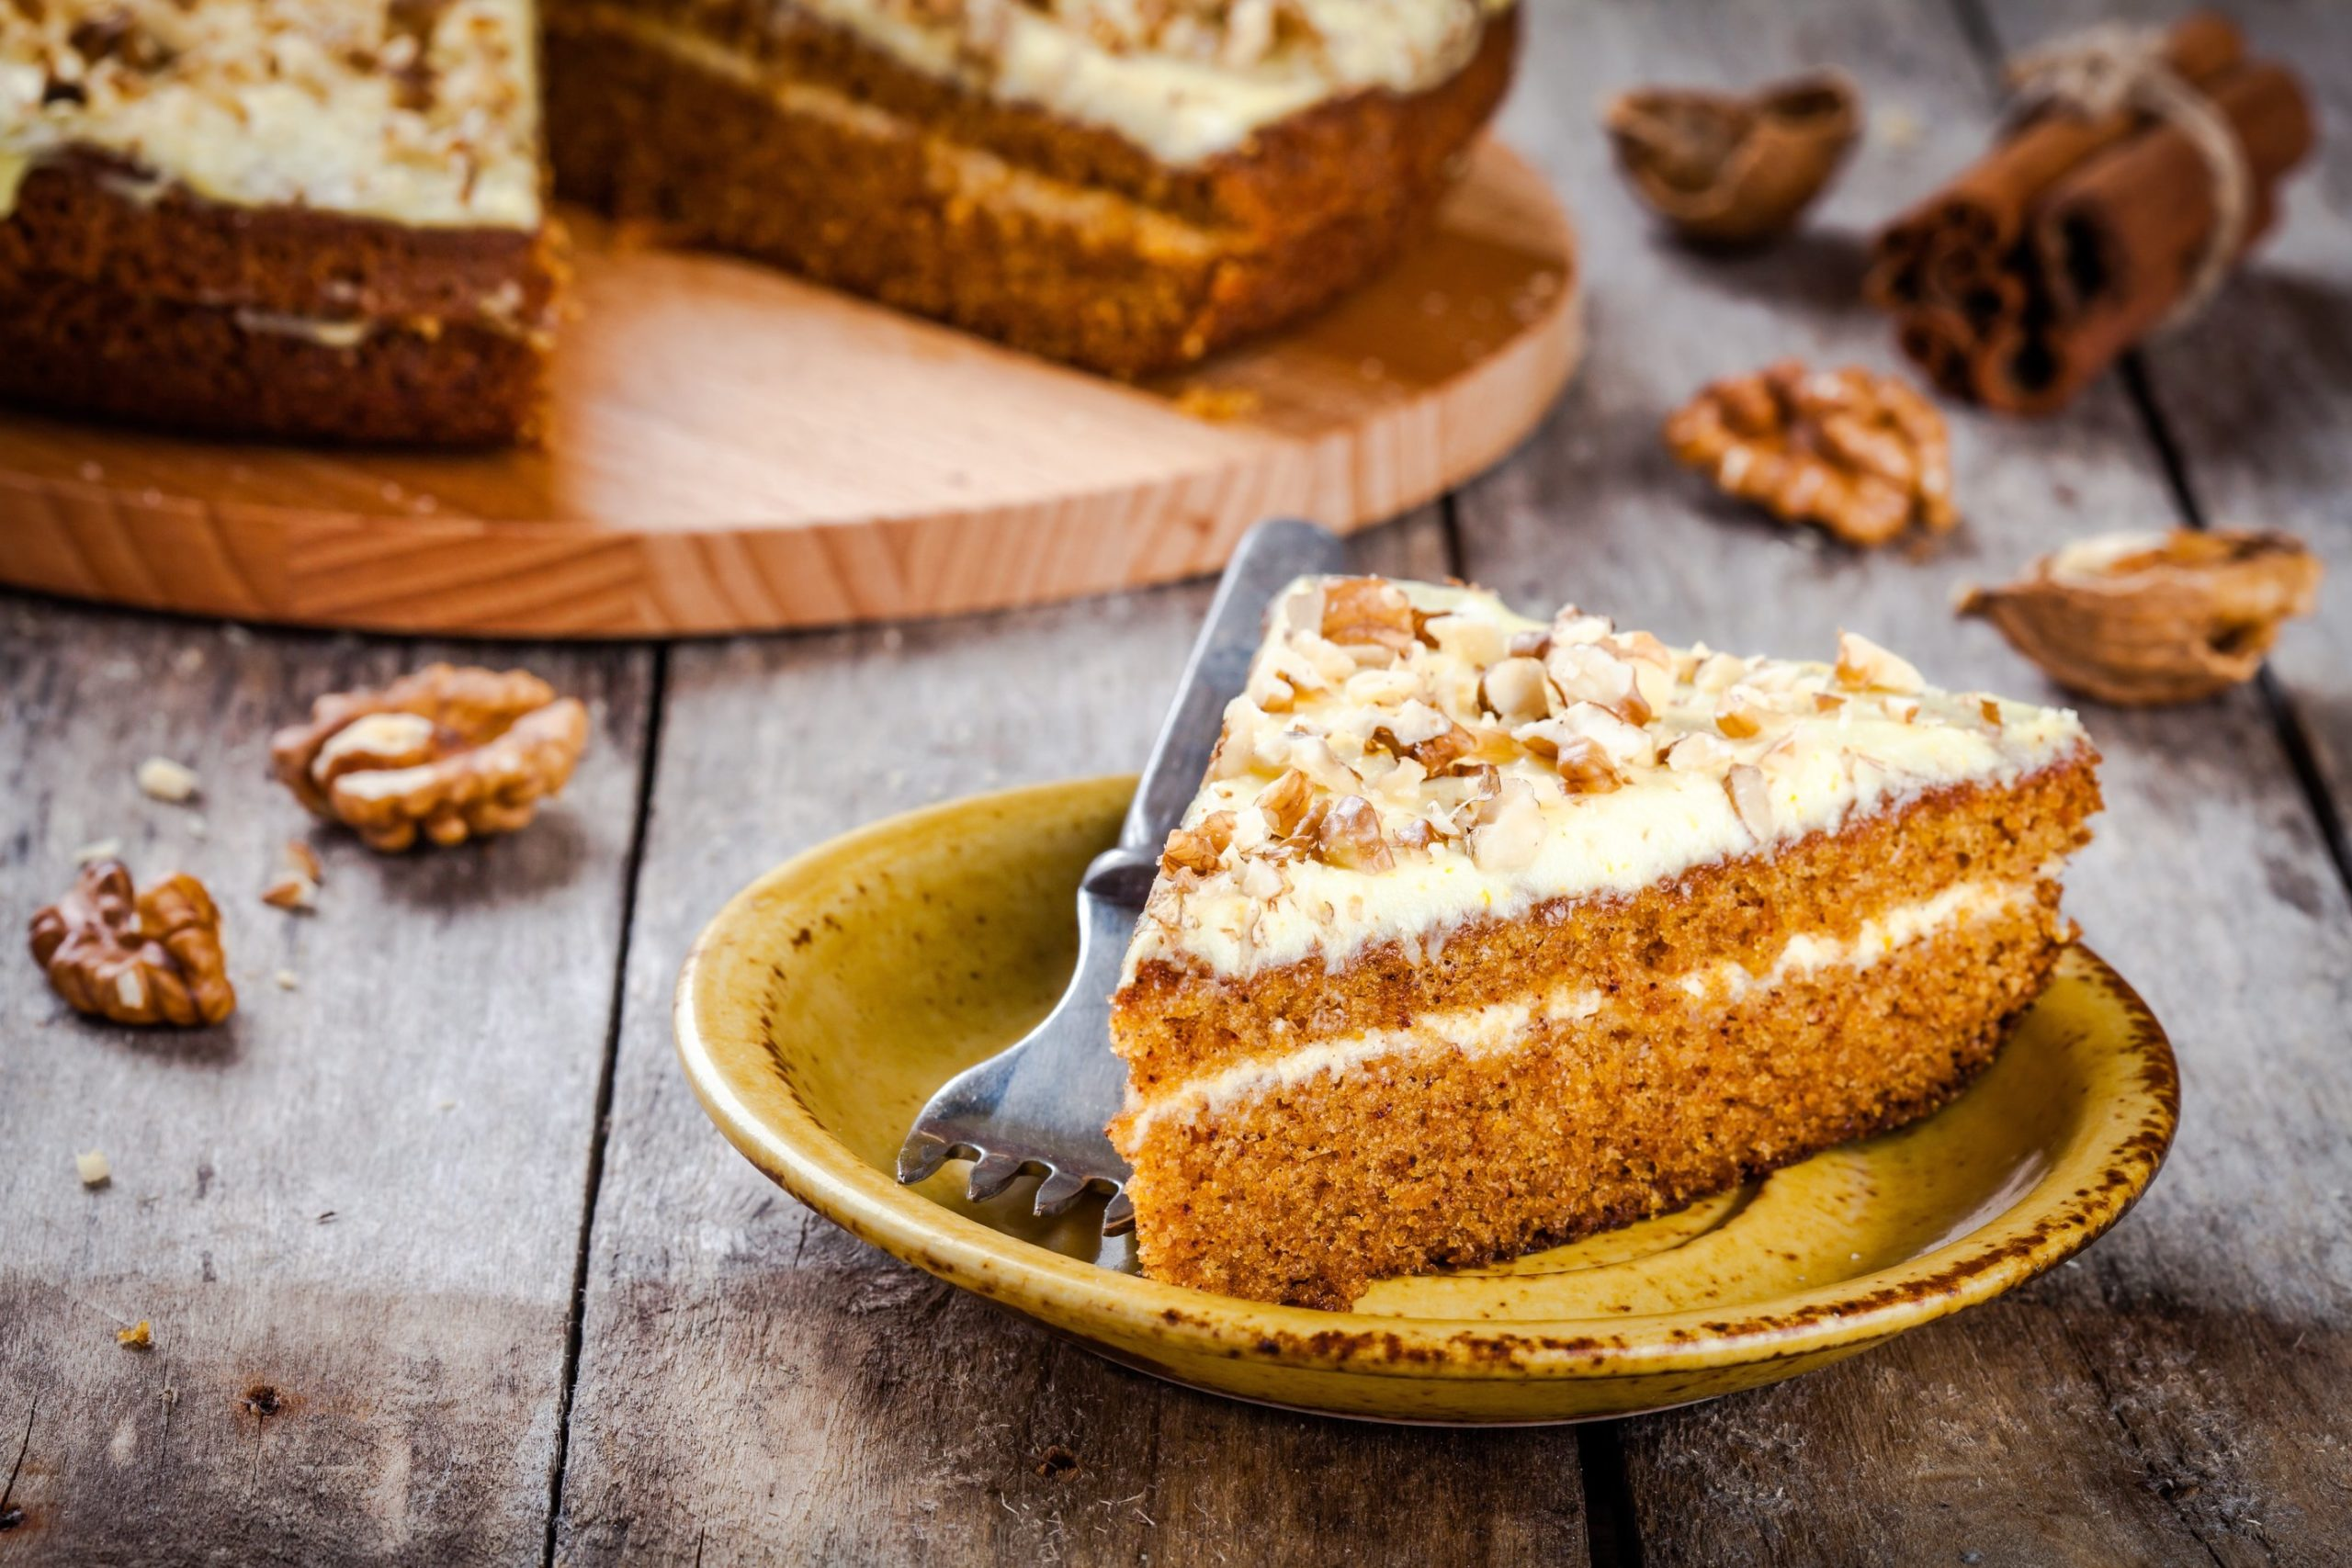 Classic Carrot Cake Recipe For You To Master